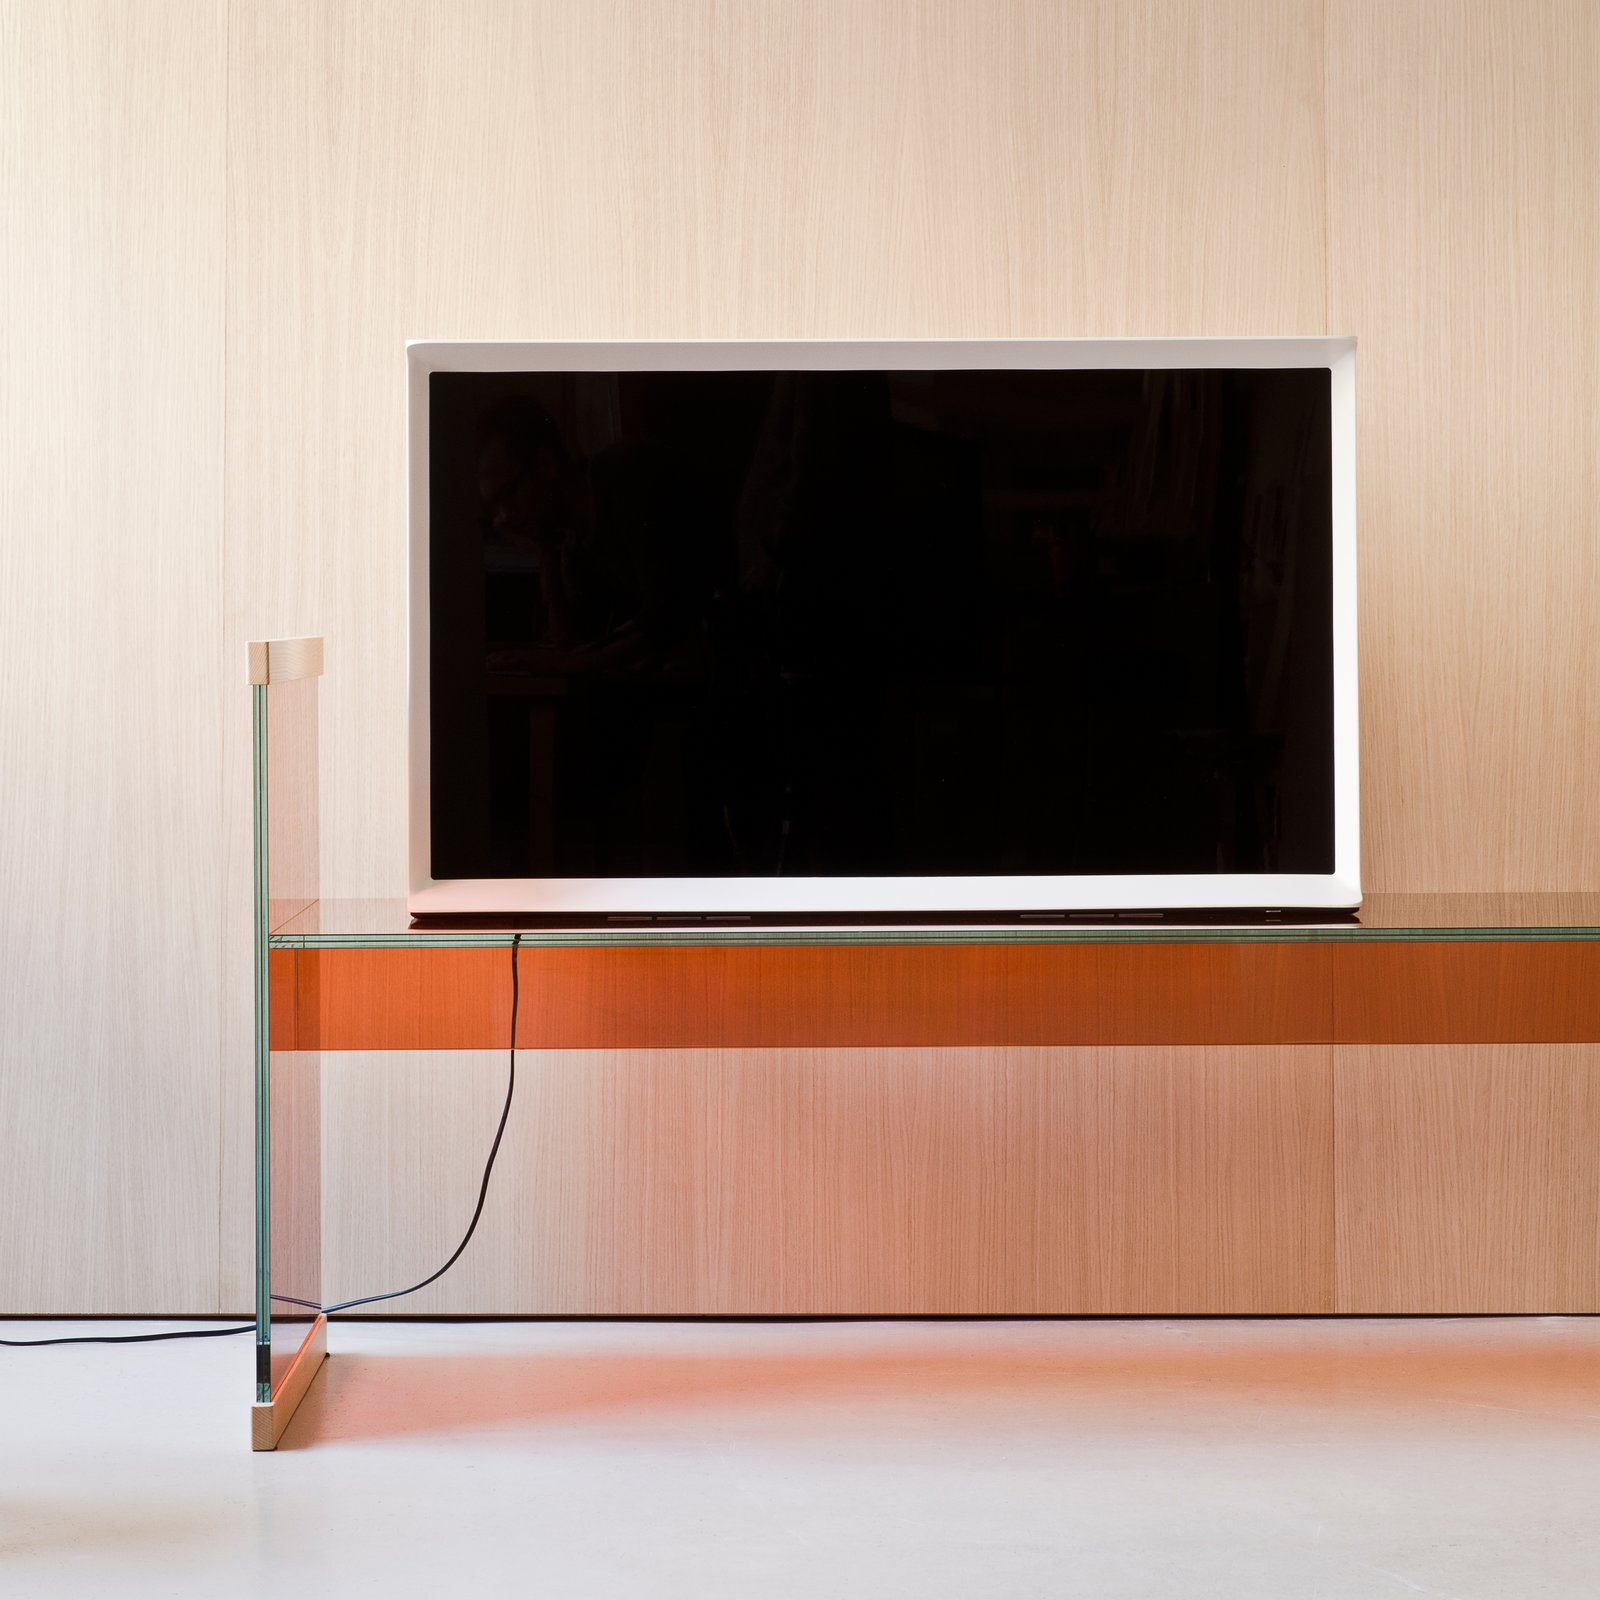 Photo 3 of 4 in The Bouroullec Brothers Turn Back the Dial to When TVs Were Furniture